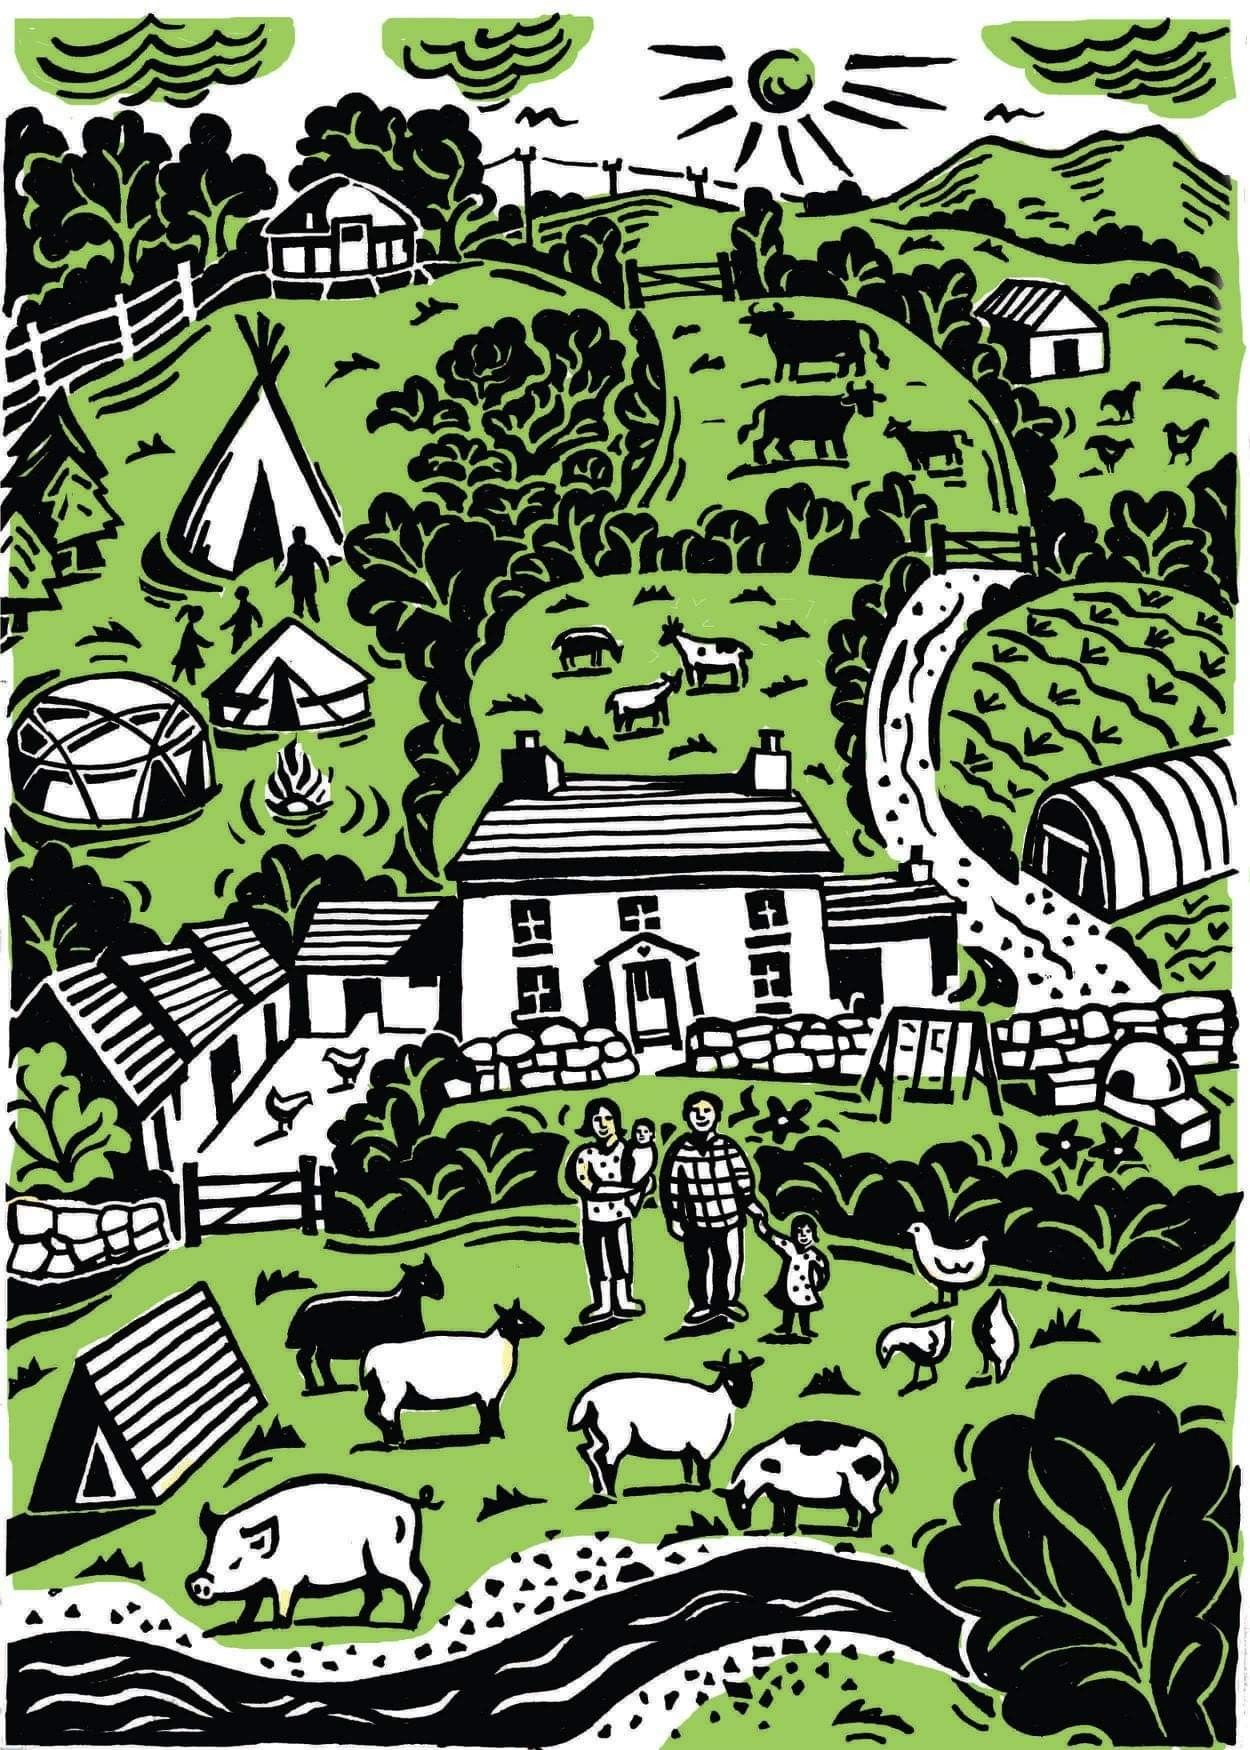 Pin by Liz Arnold on Glamping Permaculture, City photo